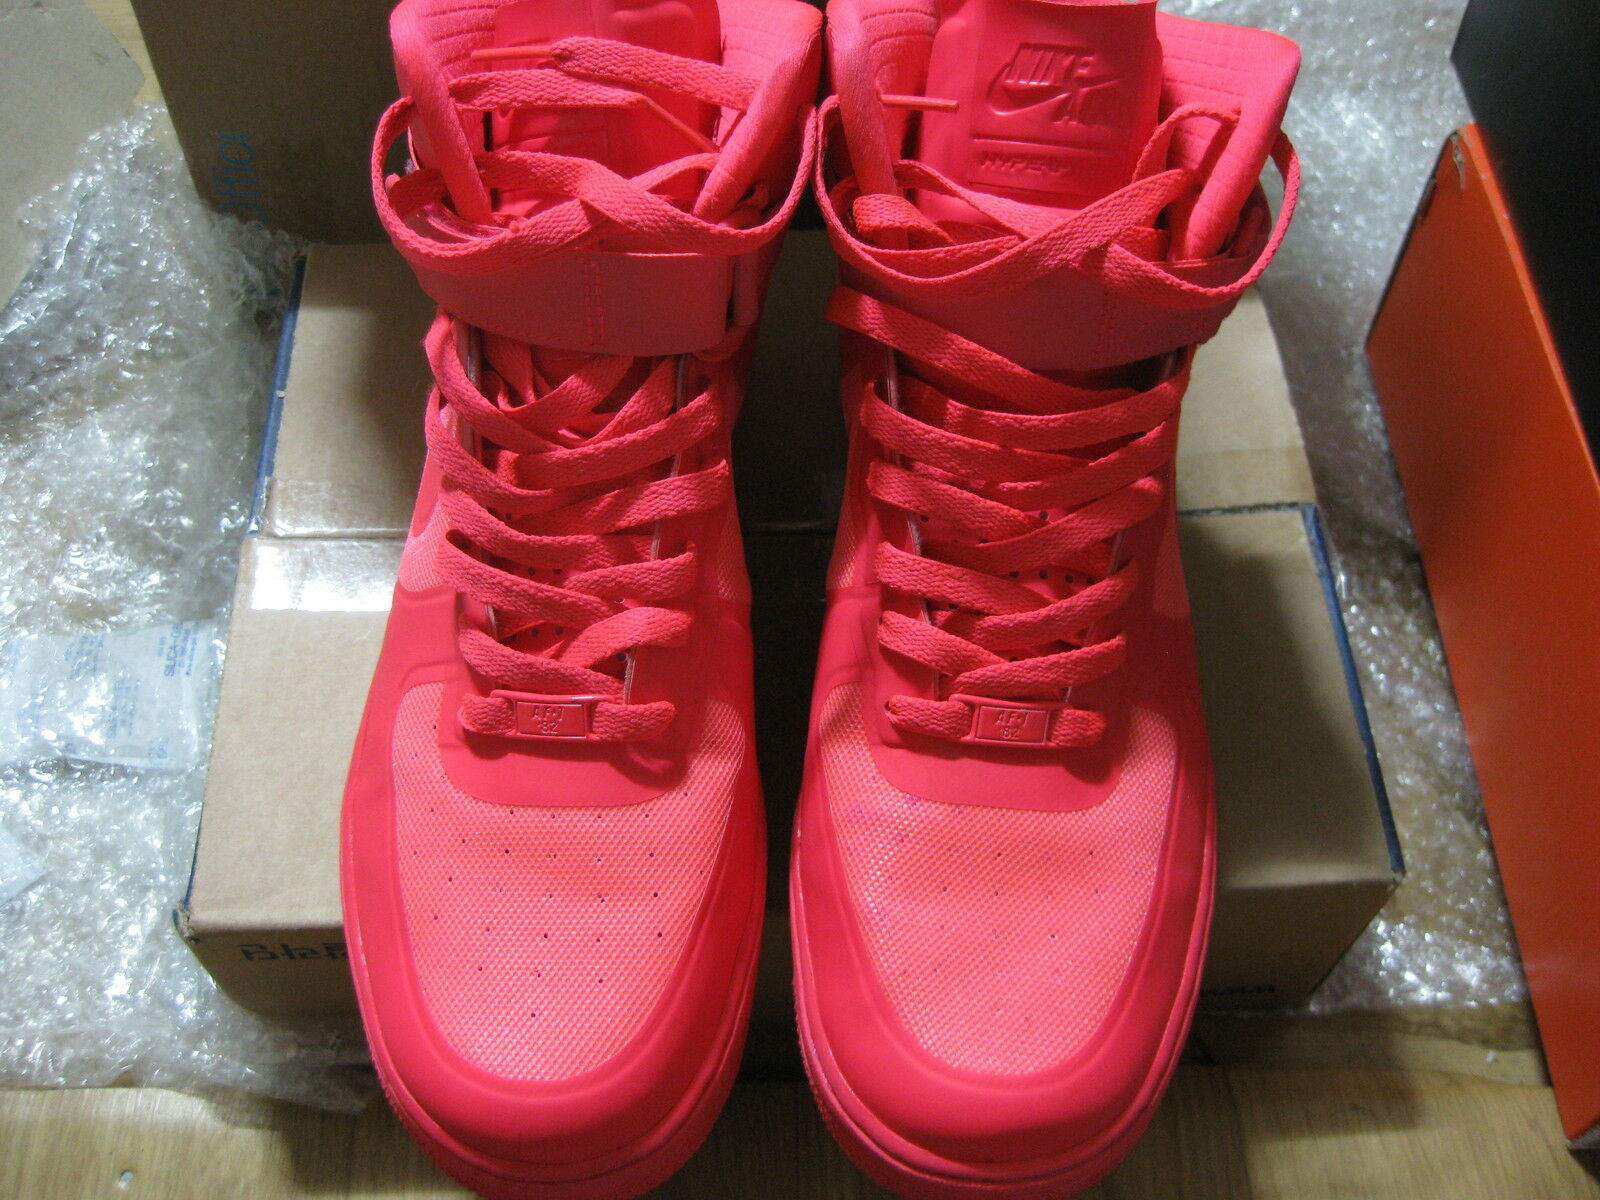 Nike air force red 1 hi ipn sonodiventate solare red force sz 9,5 095bd7